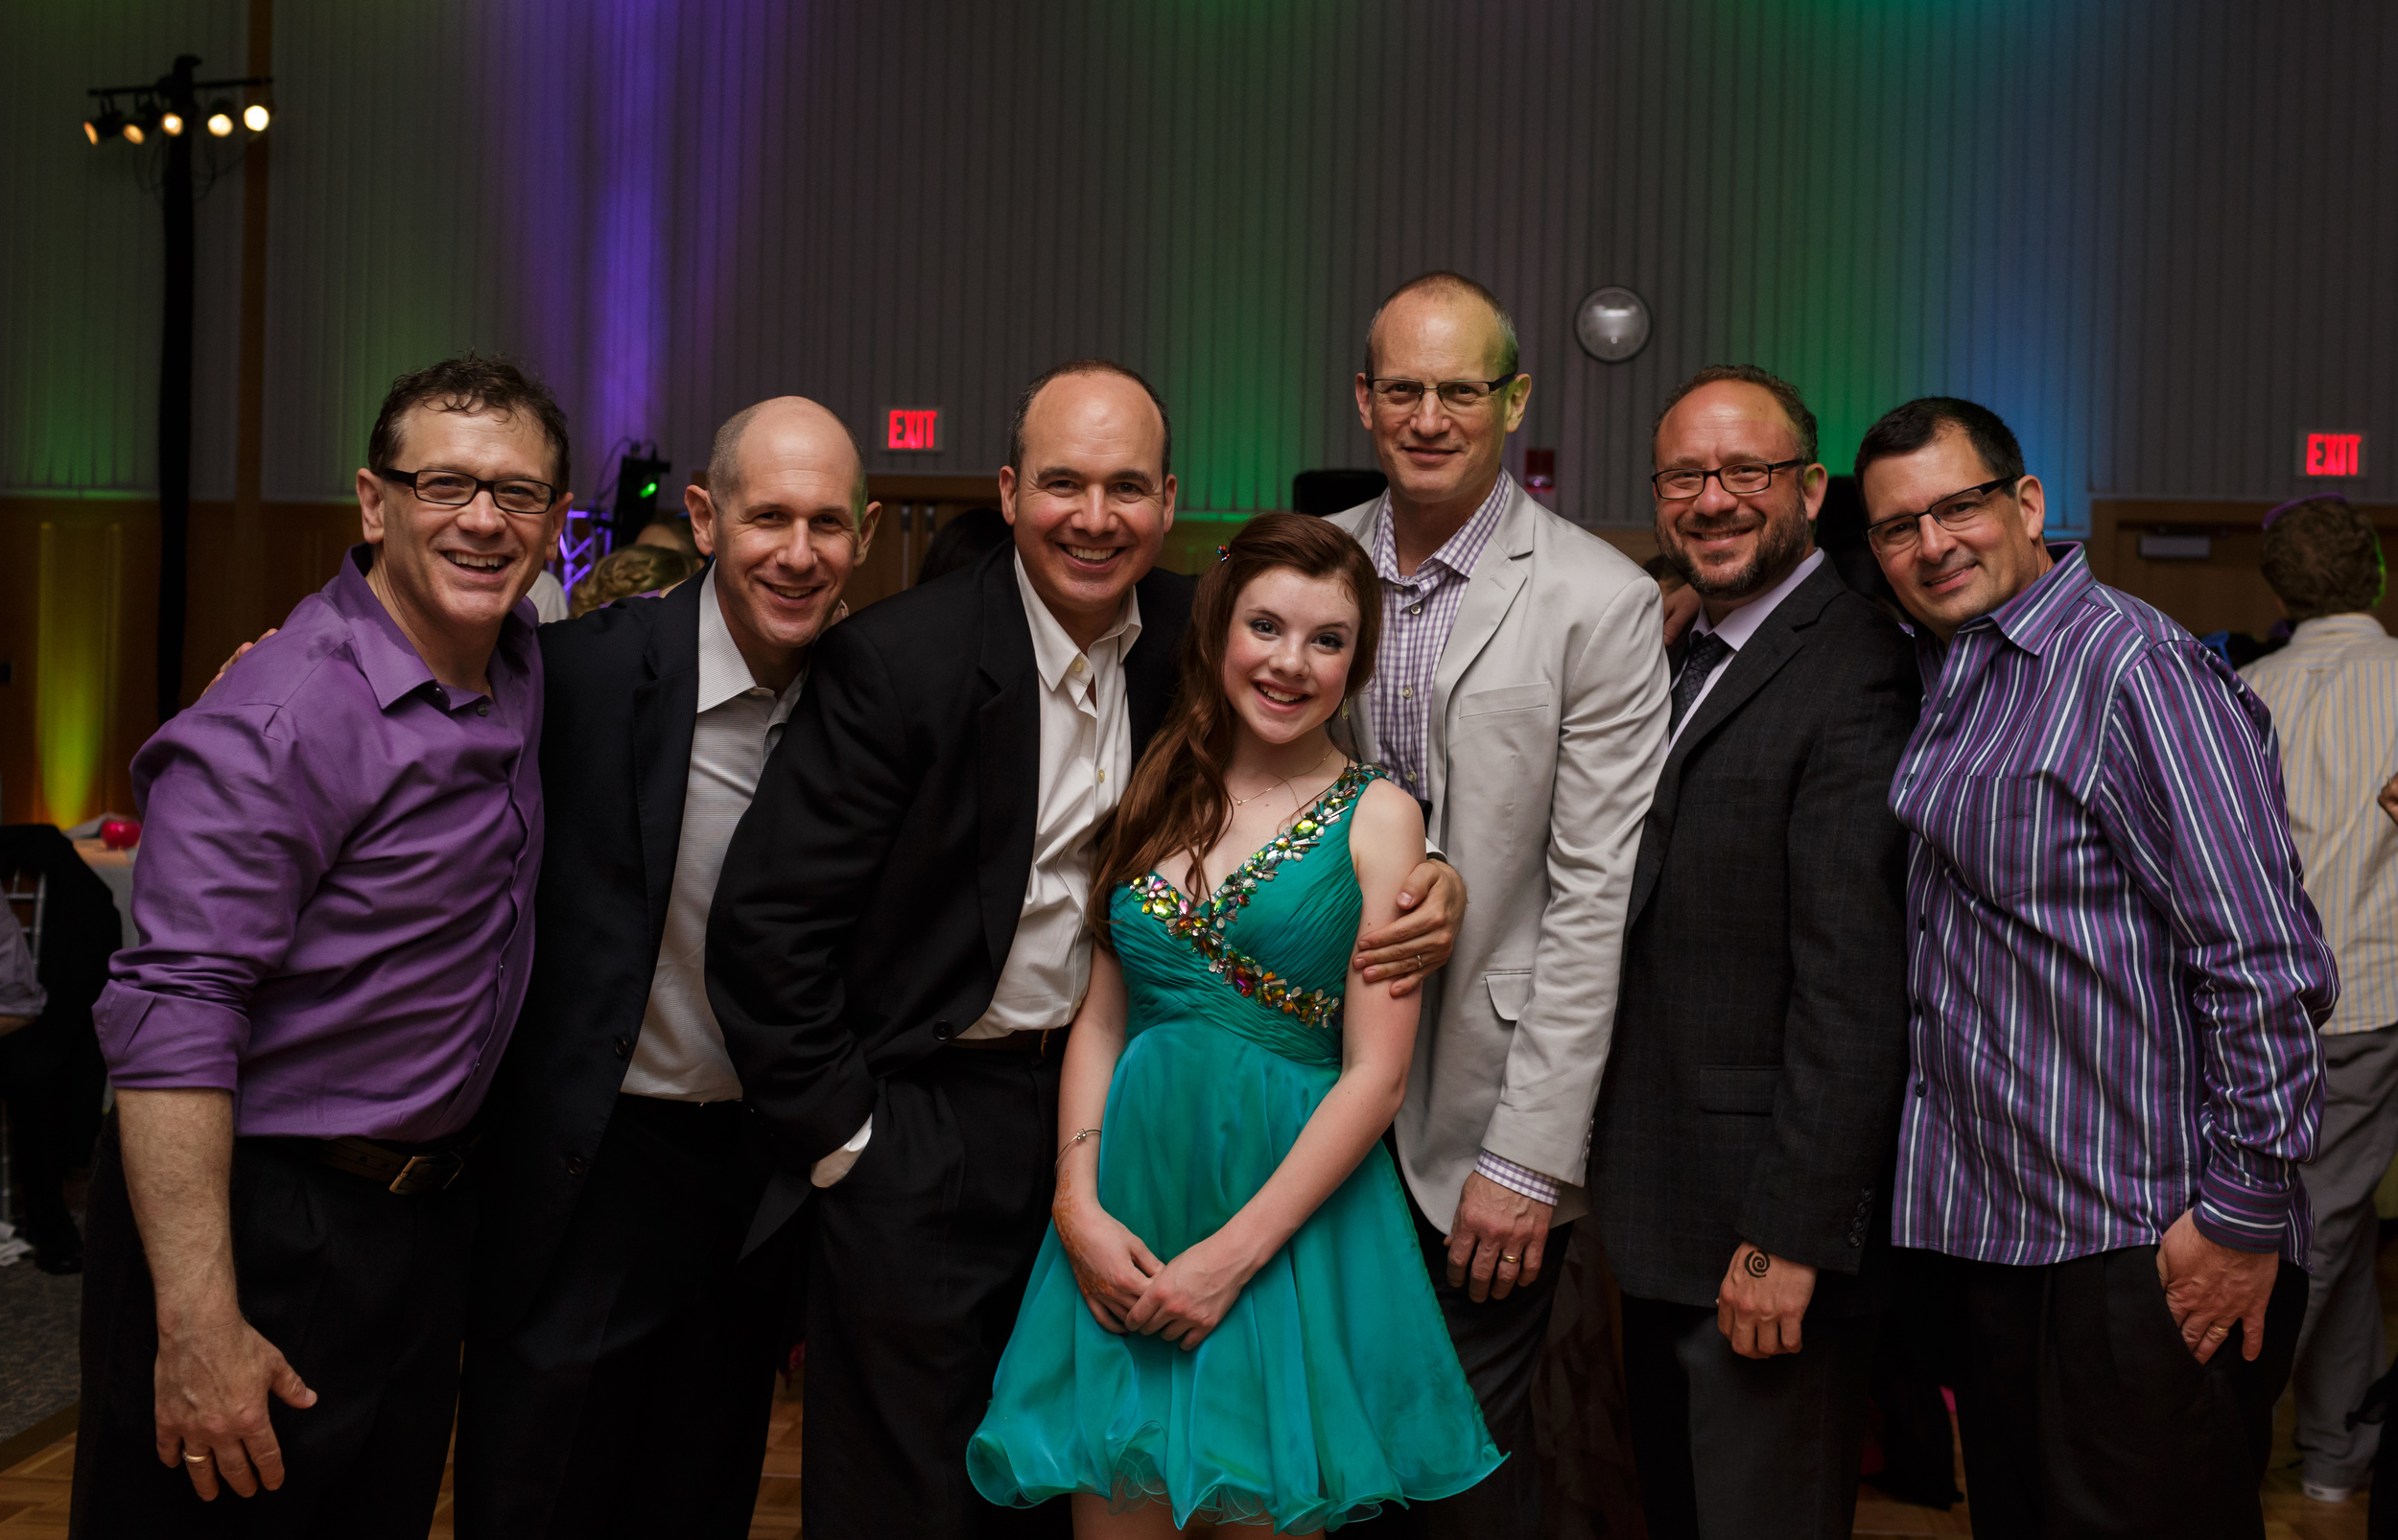 Lily_Ann_Arbor_Bat_Mitzvah_photography_30